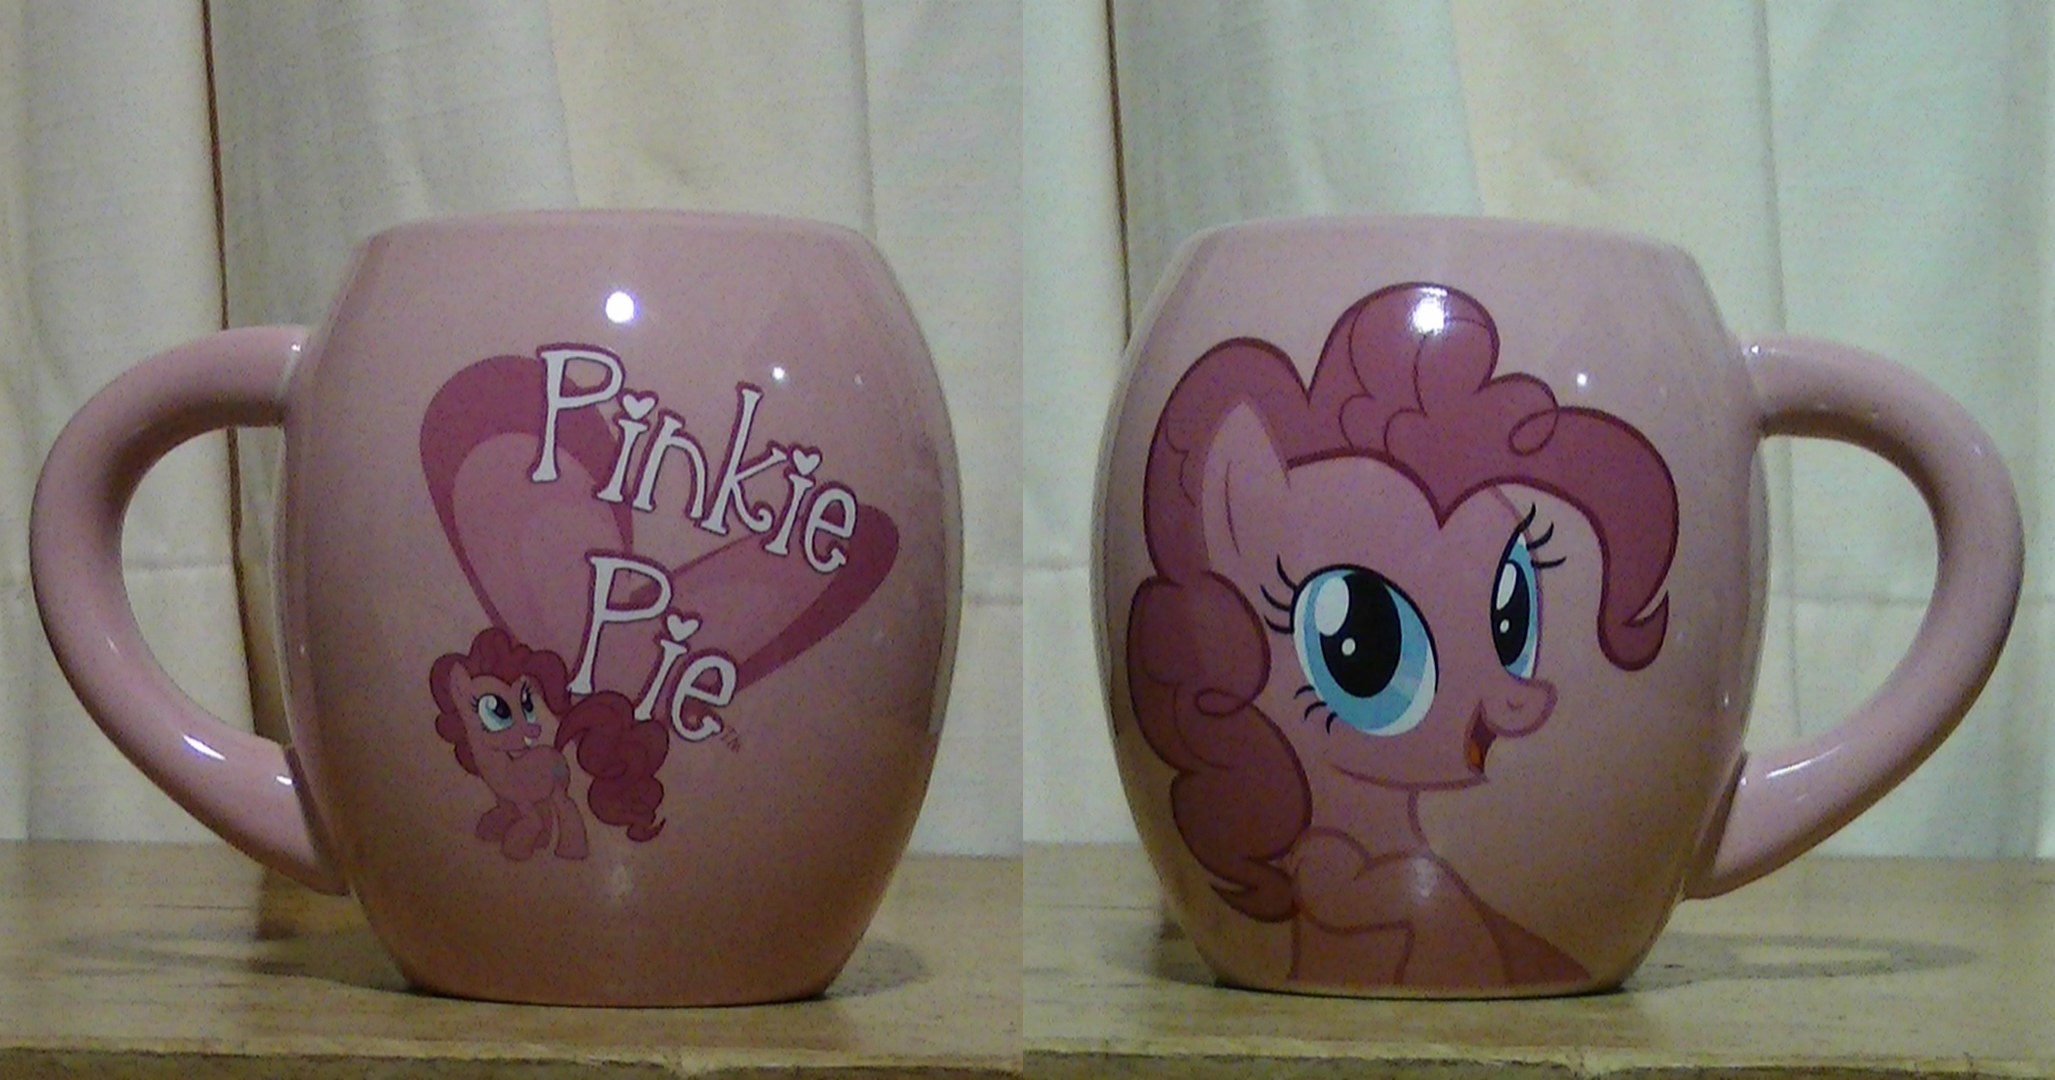 Pinkie Pie Coffee Mug by rjrgmc28